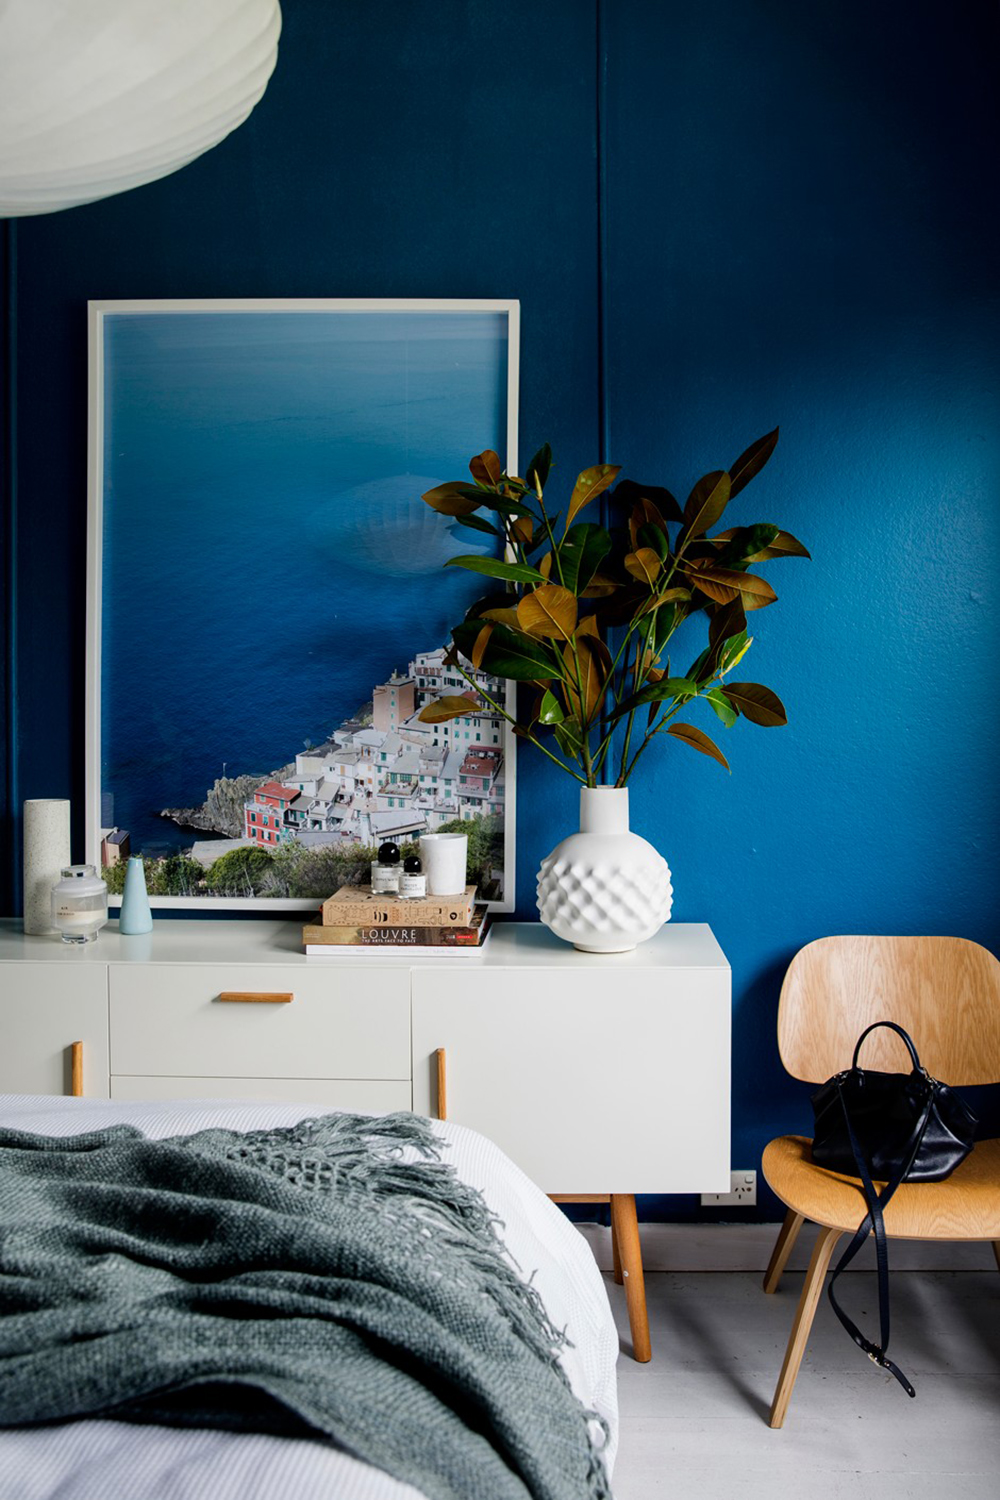 Deep sea blue bedroom looks good with white, wood and natural light - 35 ideas for blue wall colour in home decoration | Aliz's Wonderland